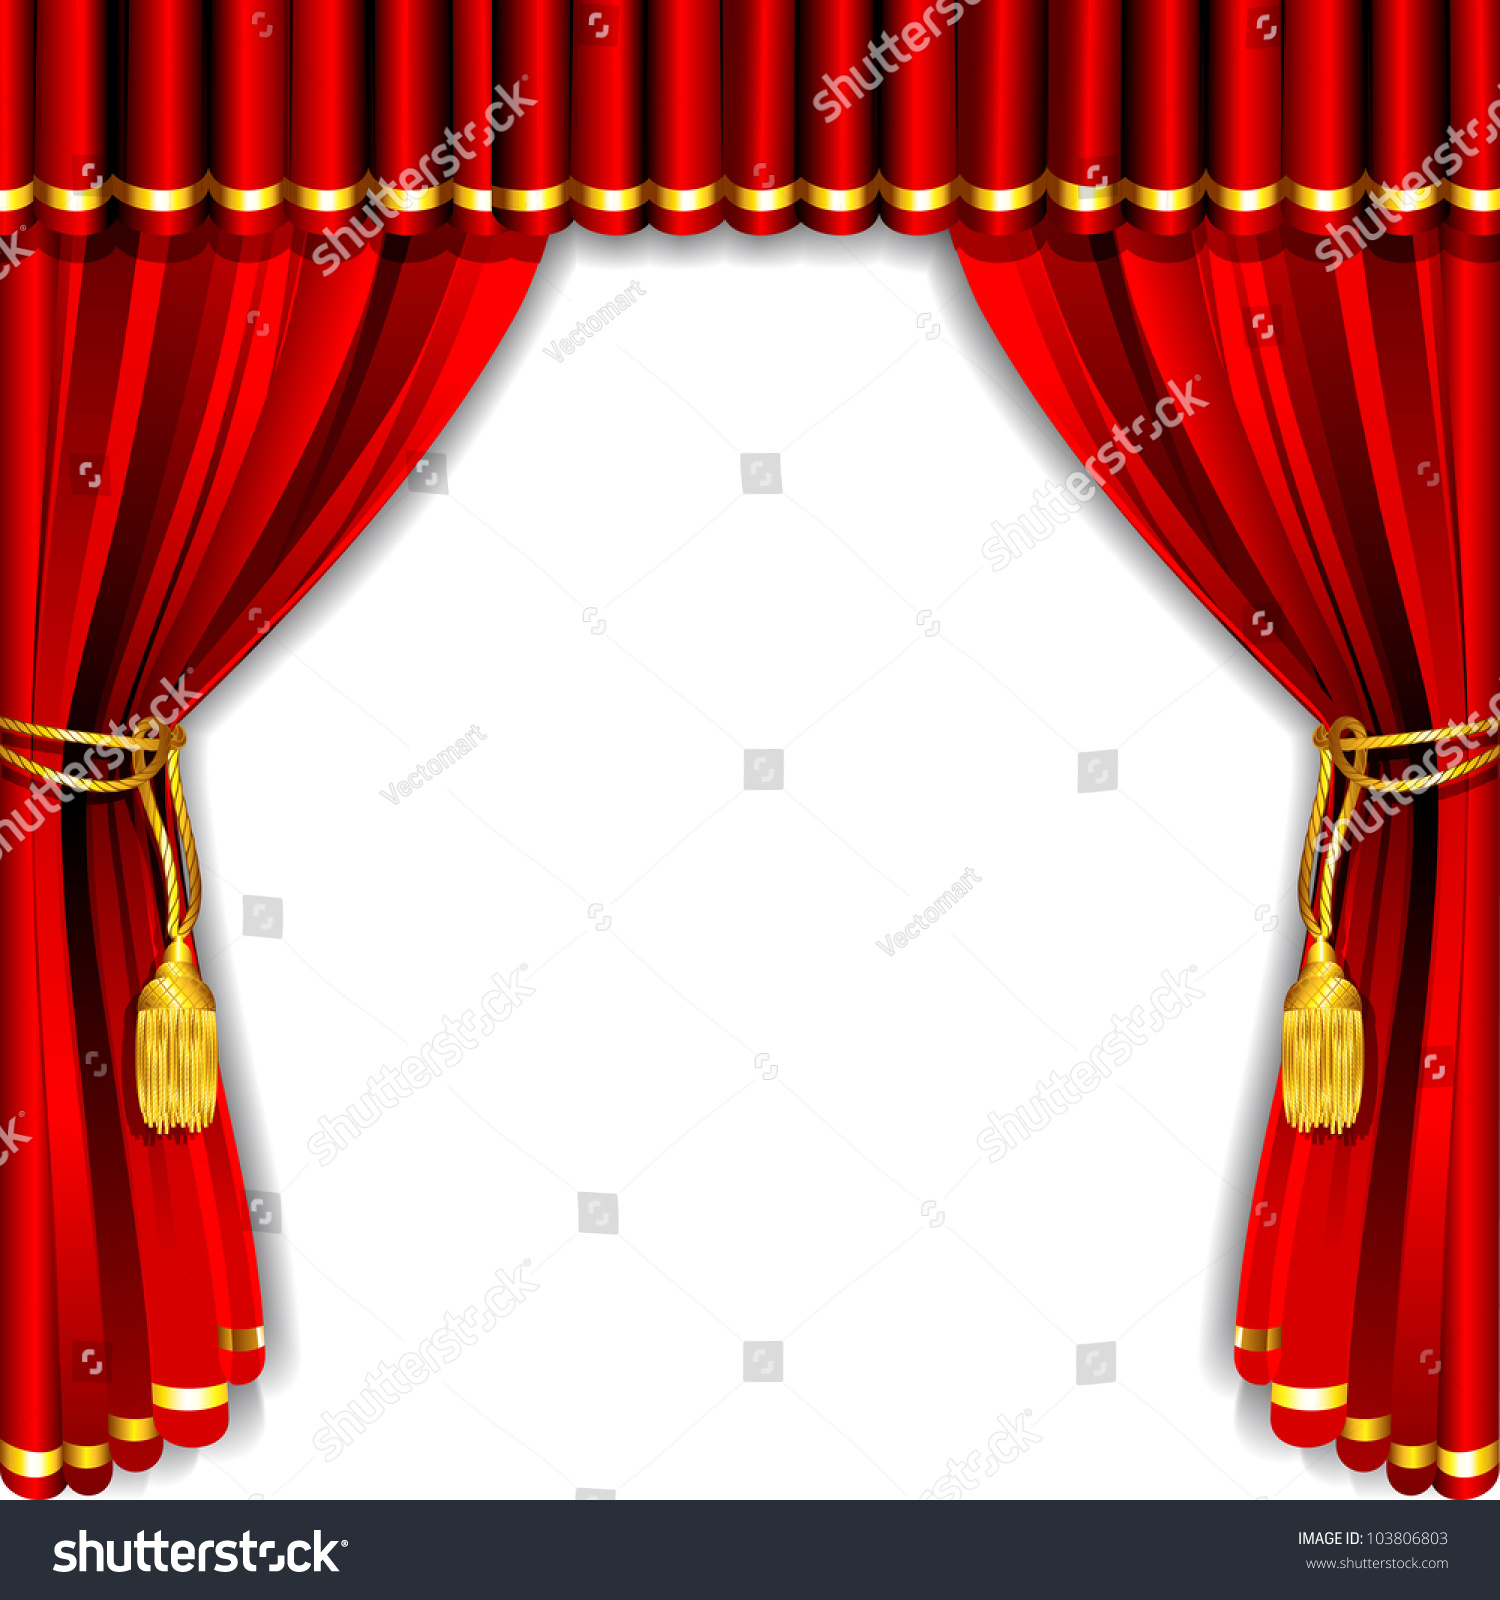 Bl blue stage curtains background -  Blue Theater Silk Curtain Background With Illustration Download